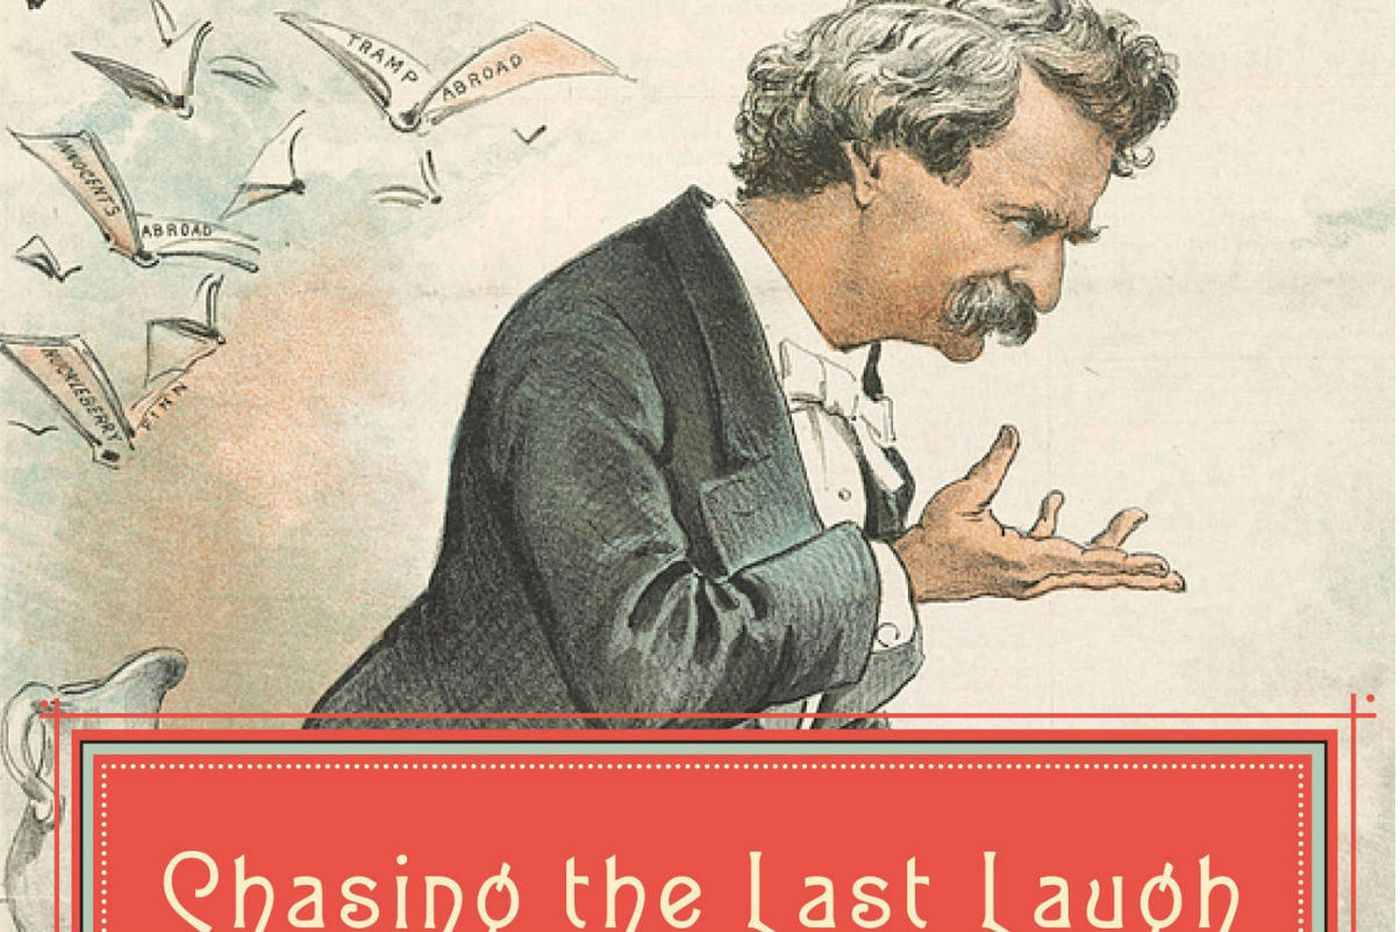 Mark Twain's world tour comes to life in 'Chasing the Last Laugh'